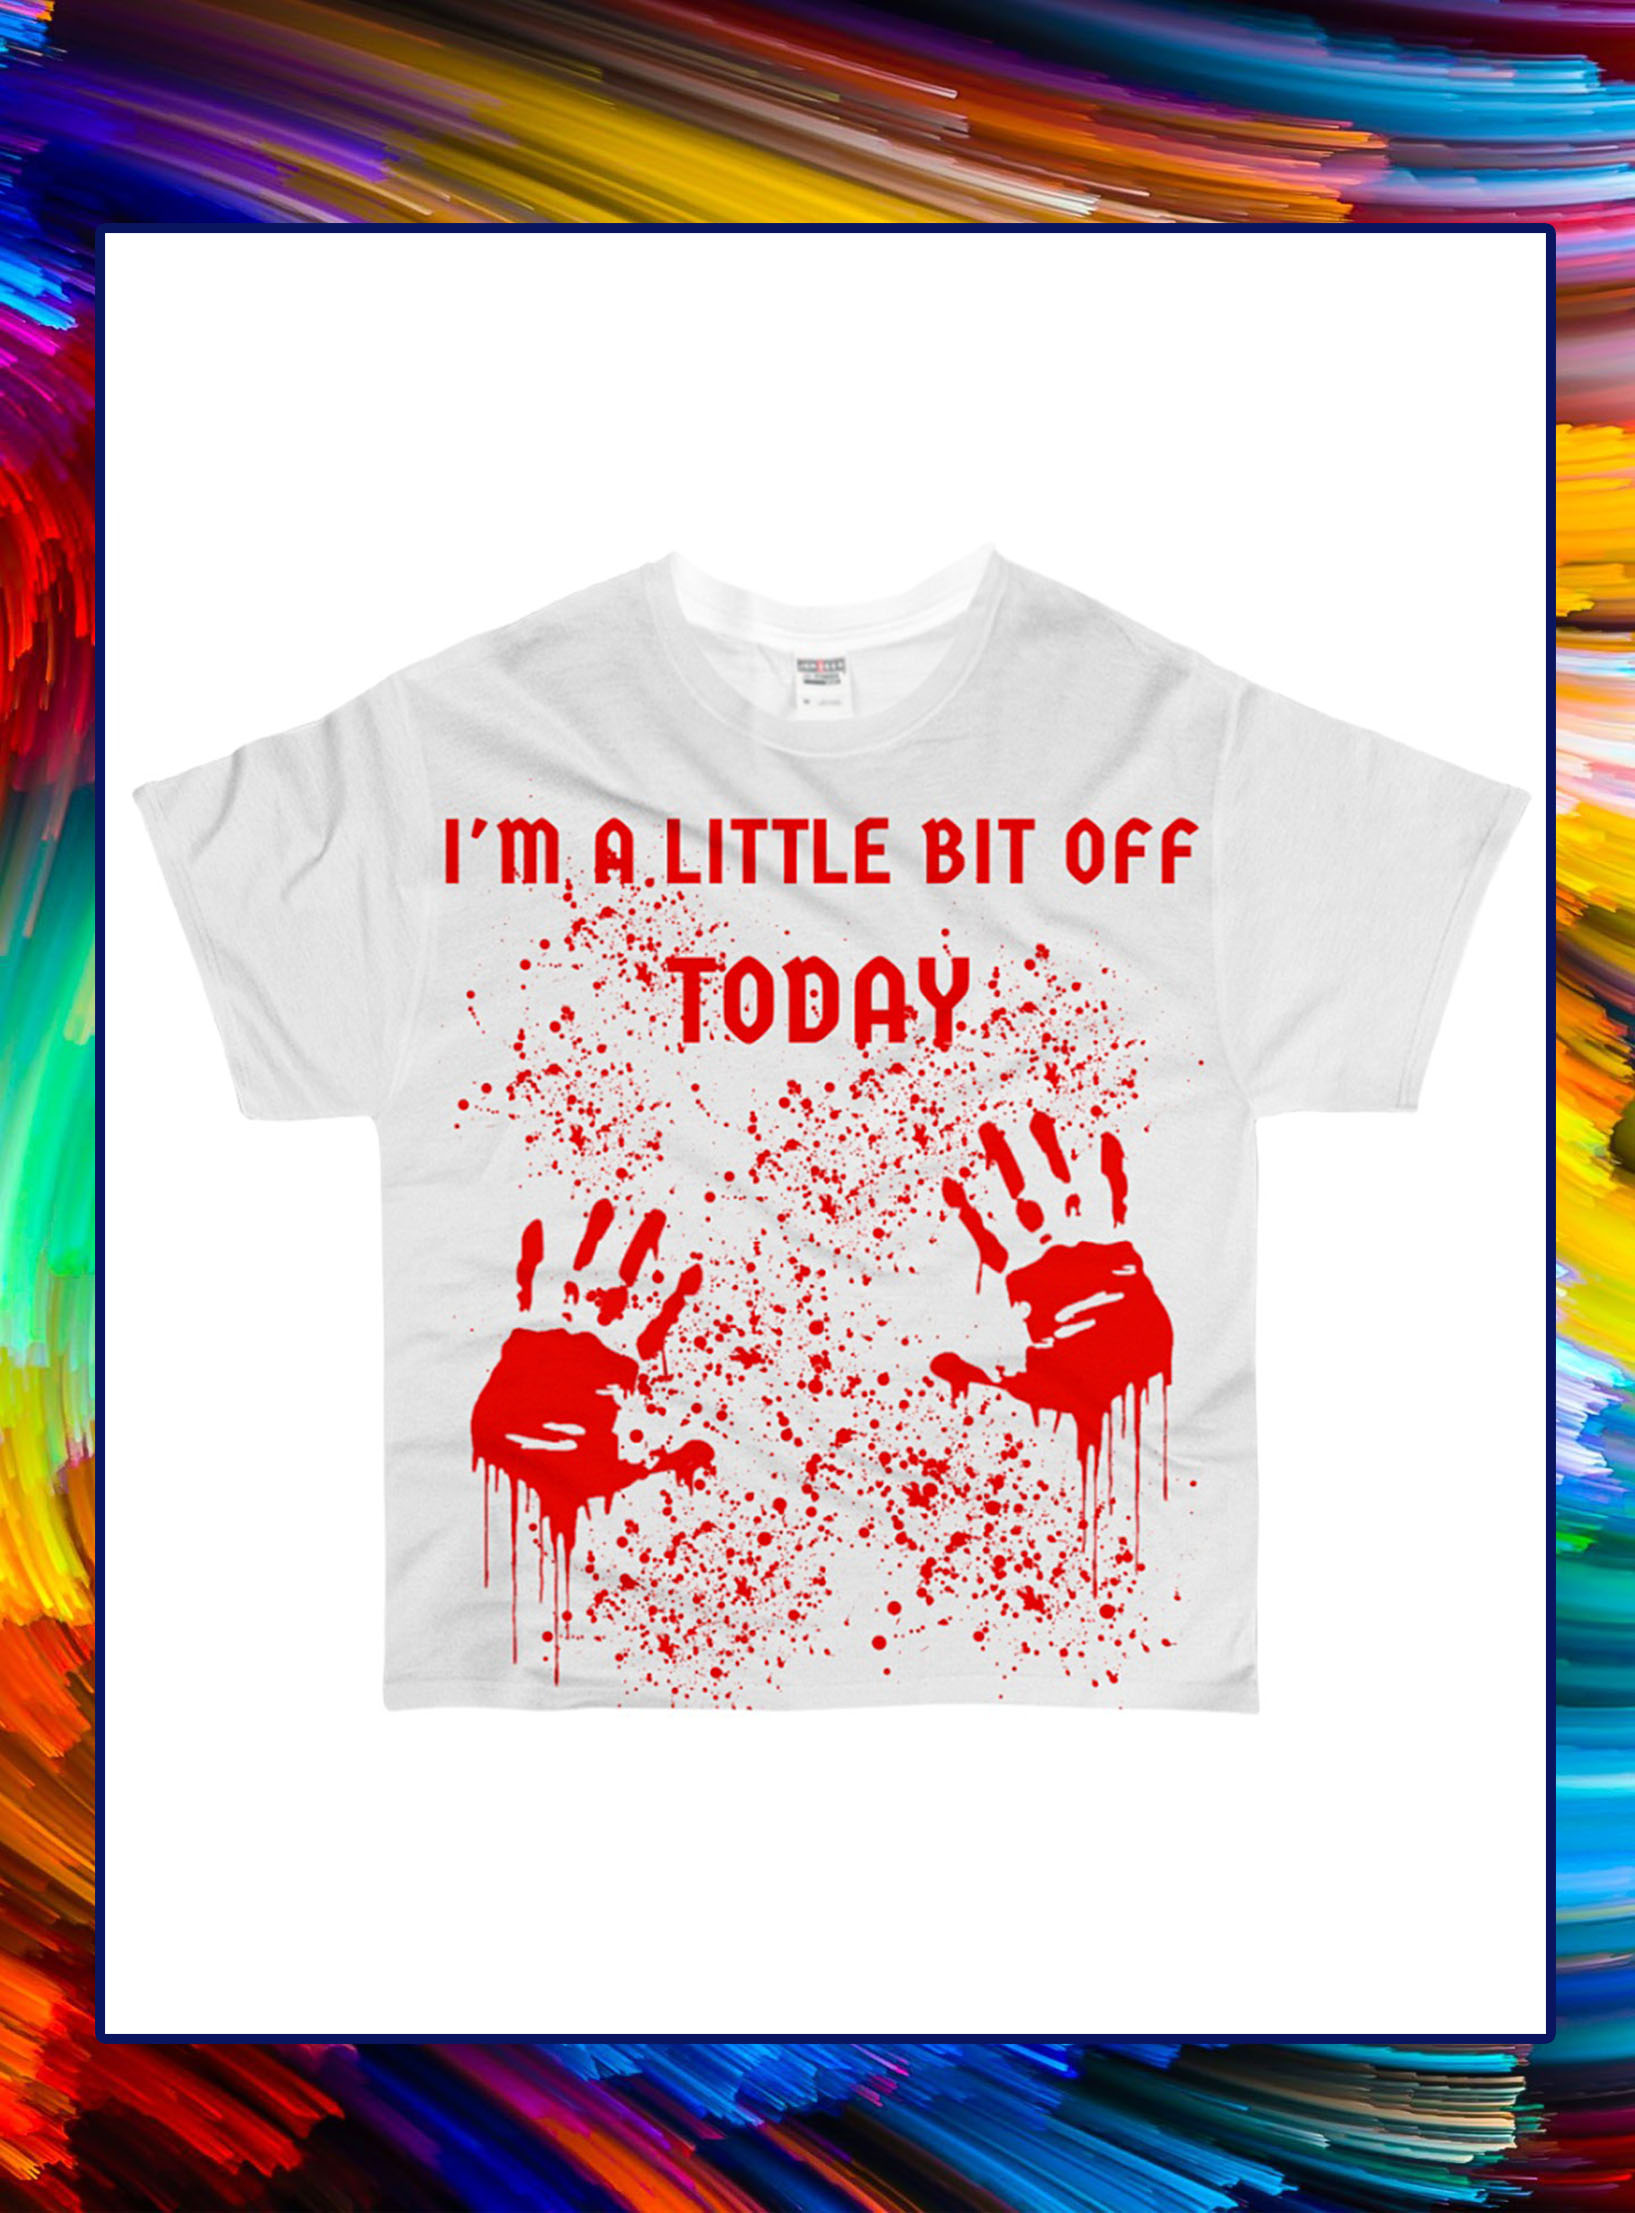 I'm a little bit off today blood all over t-shirt